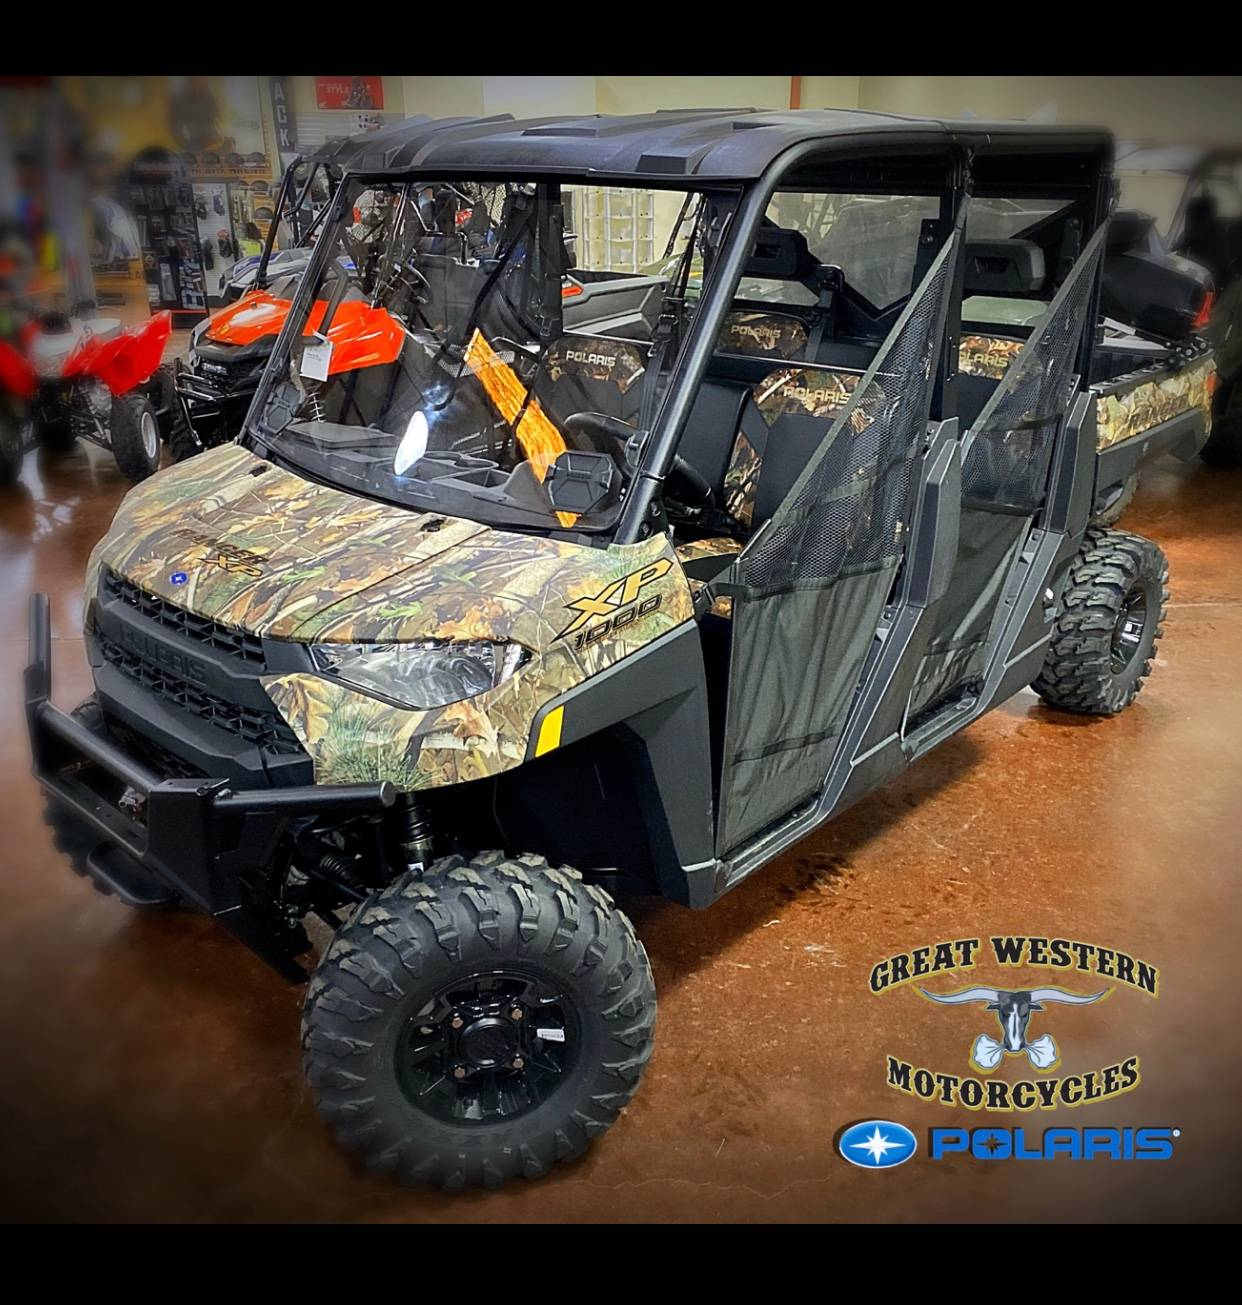 2020 Polaris Ranger Crew 1000 EPS in Statesville, North Carolina - Photo 1